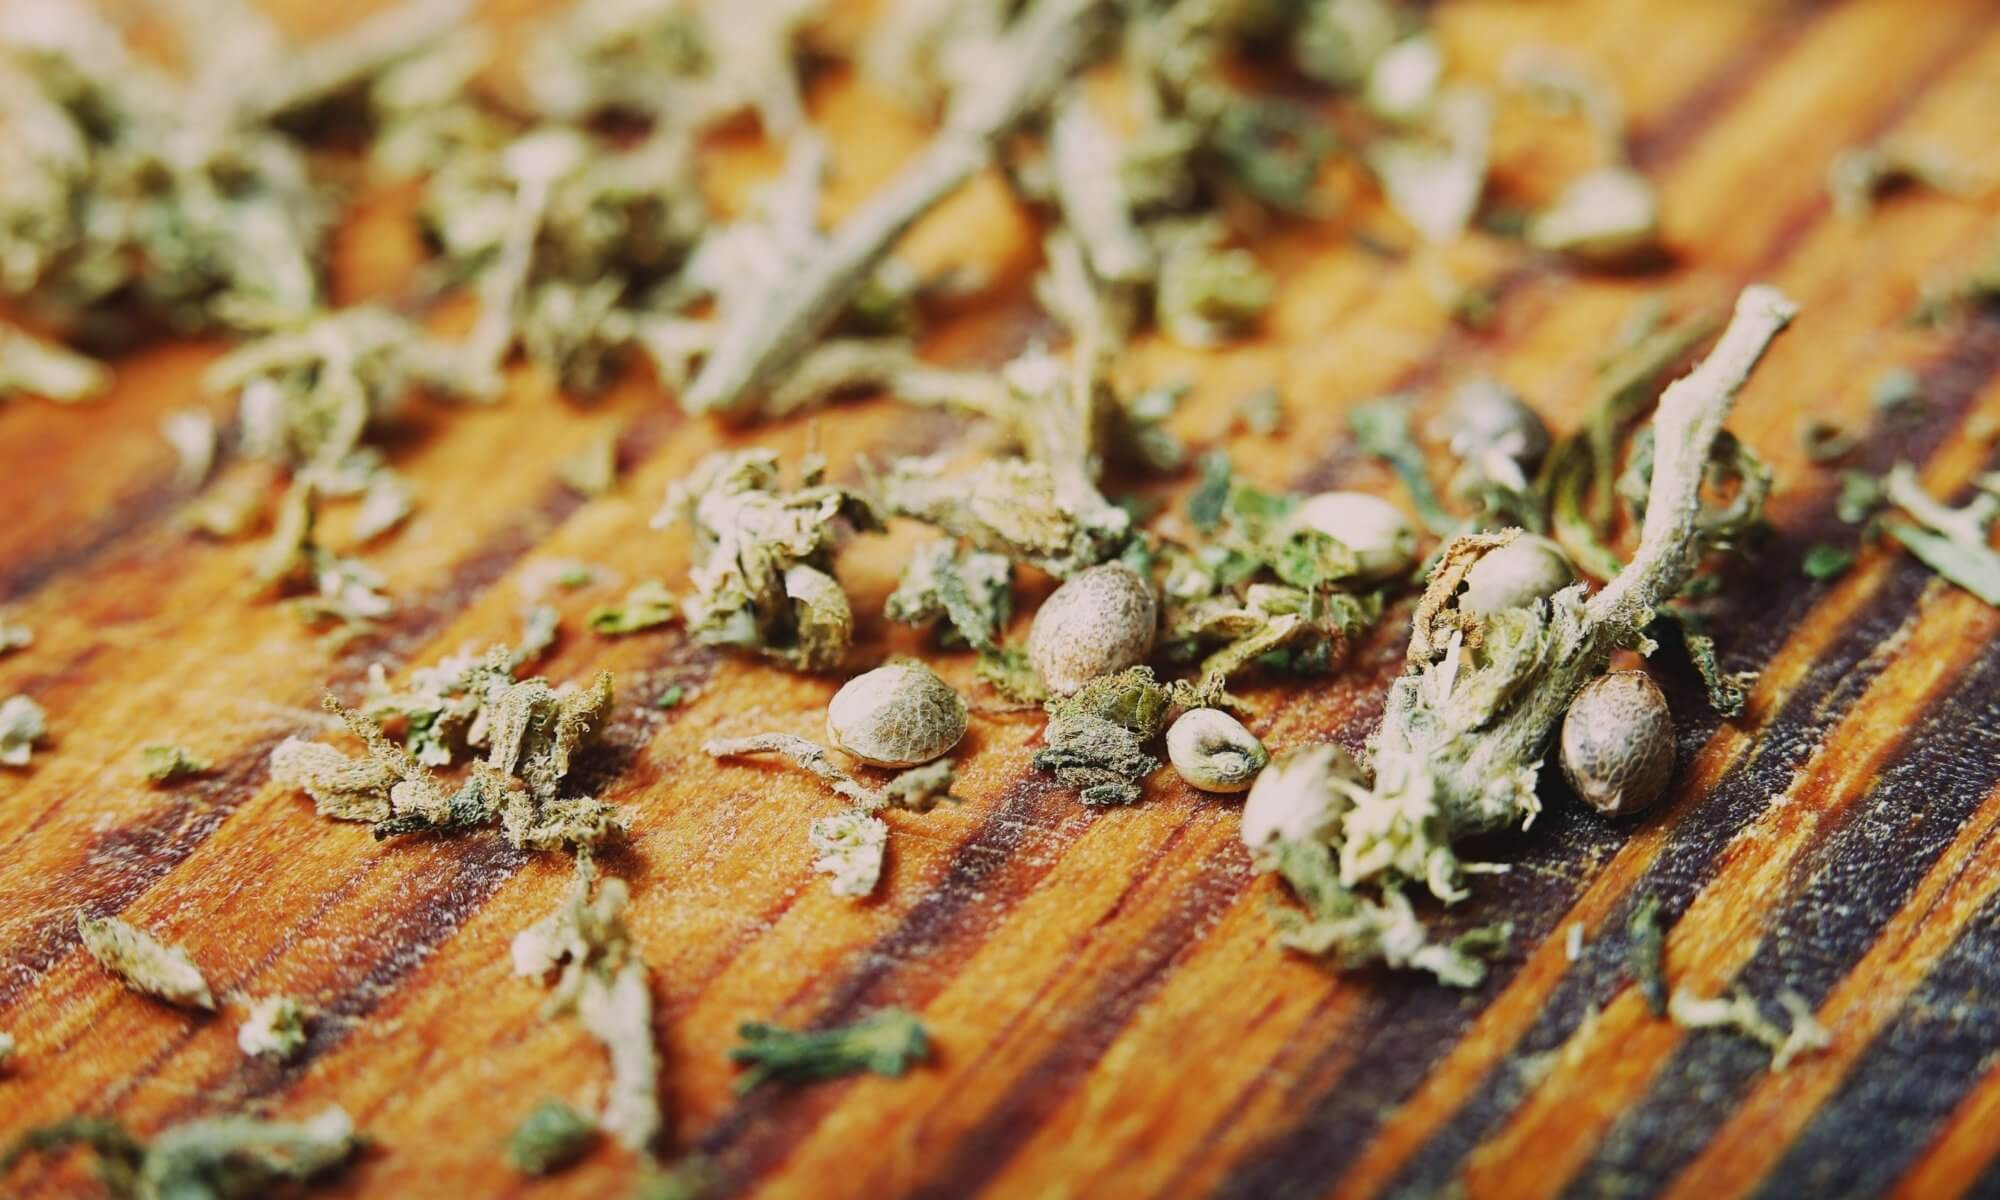 Where To Buy Weed Seed?